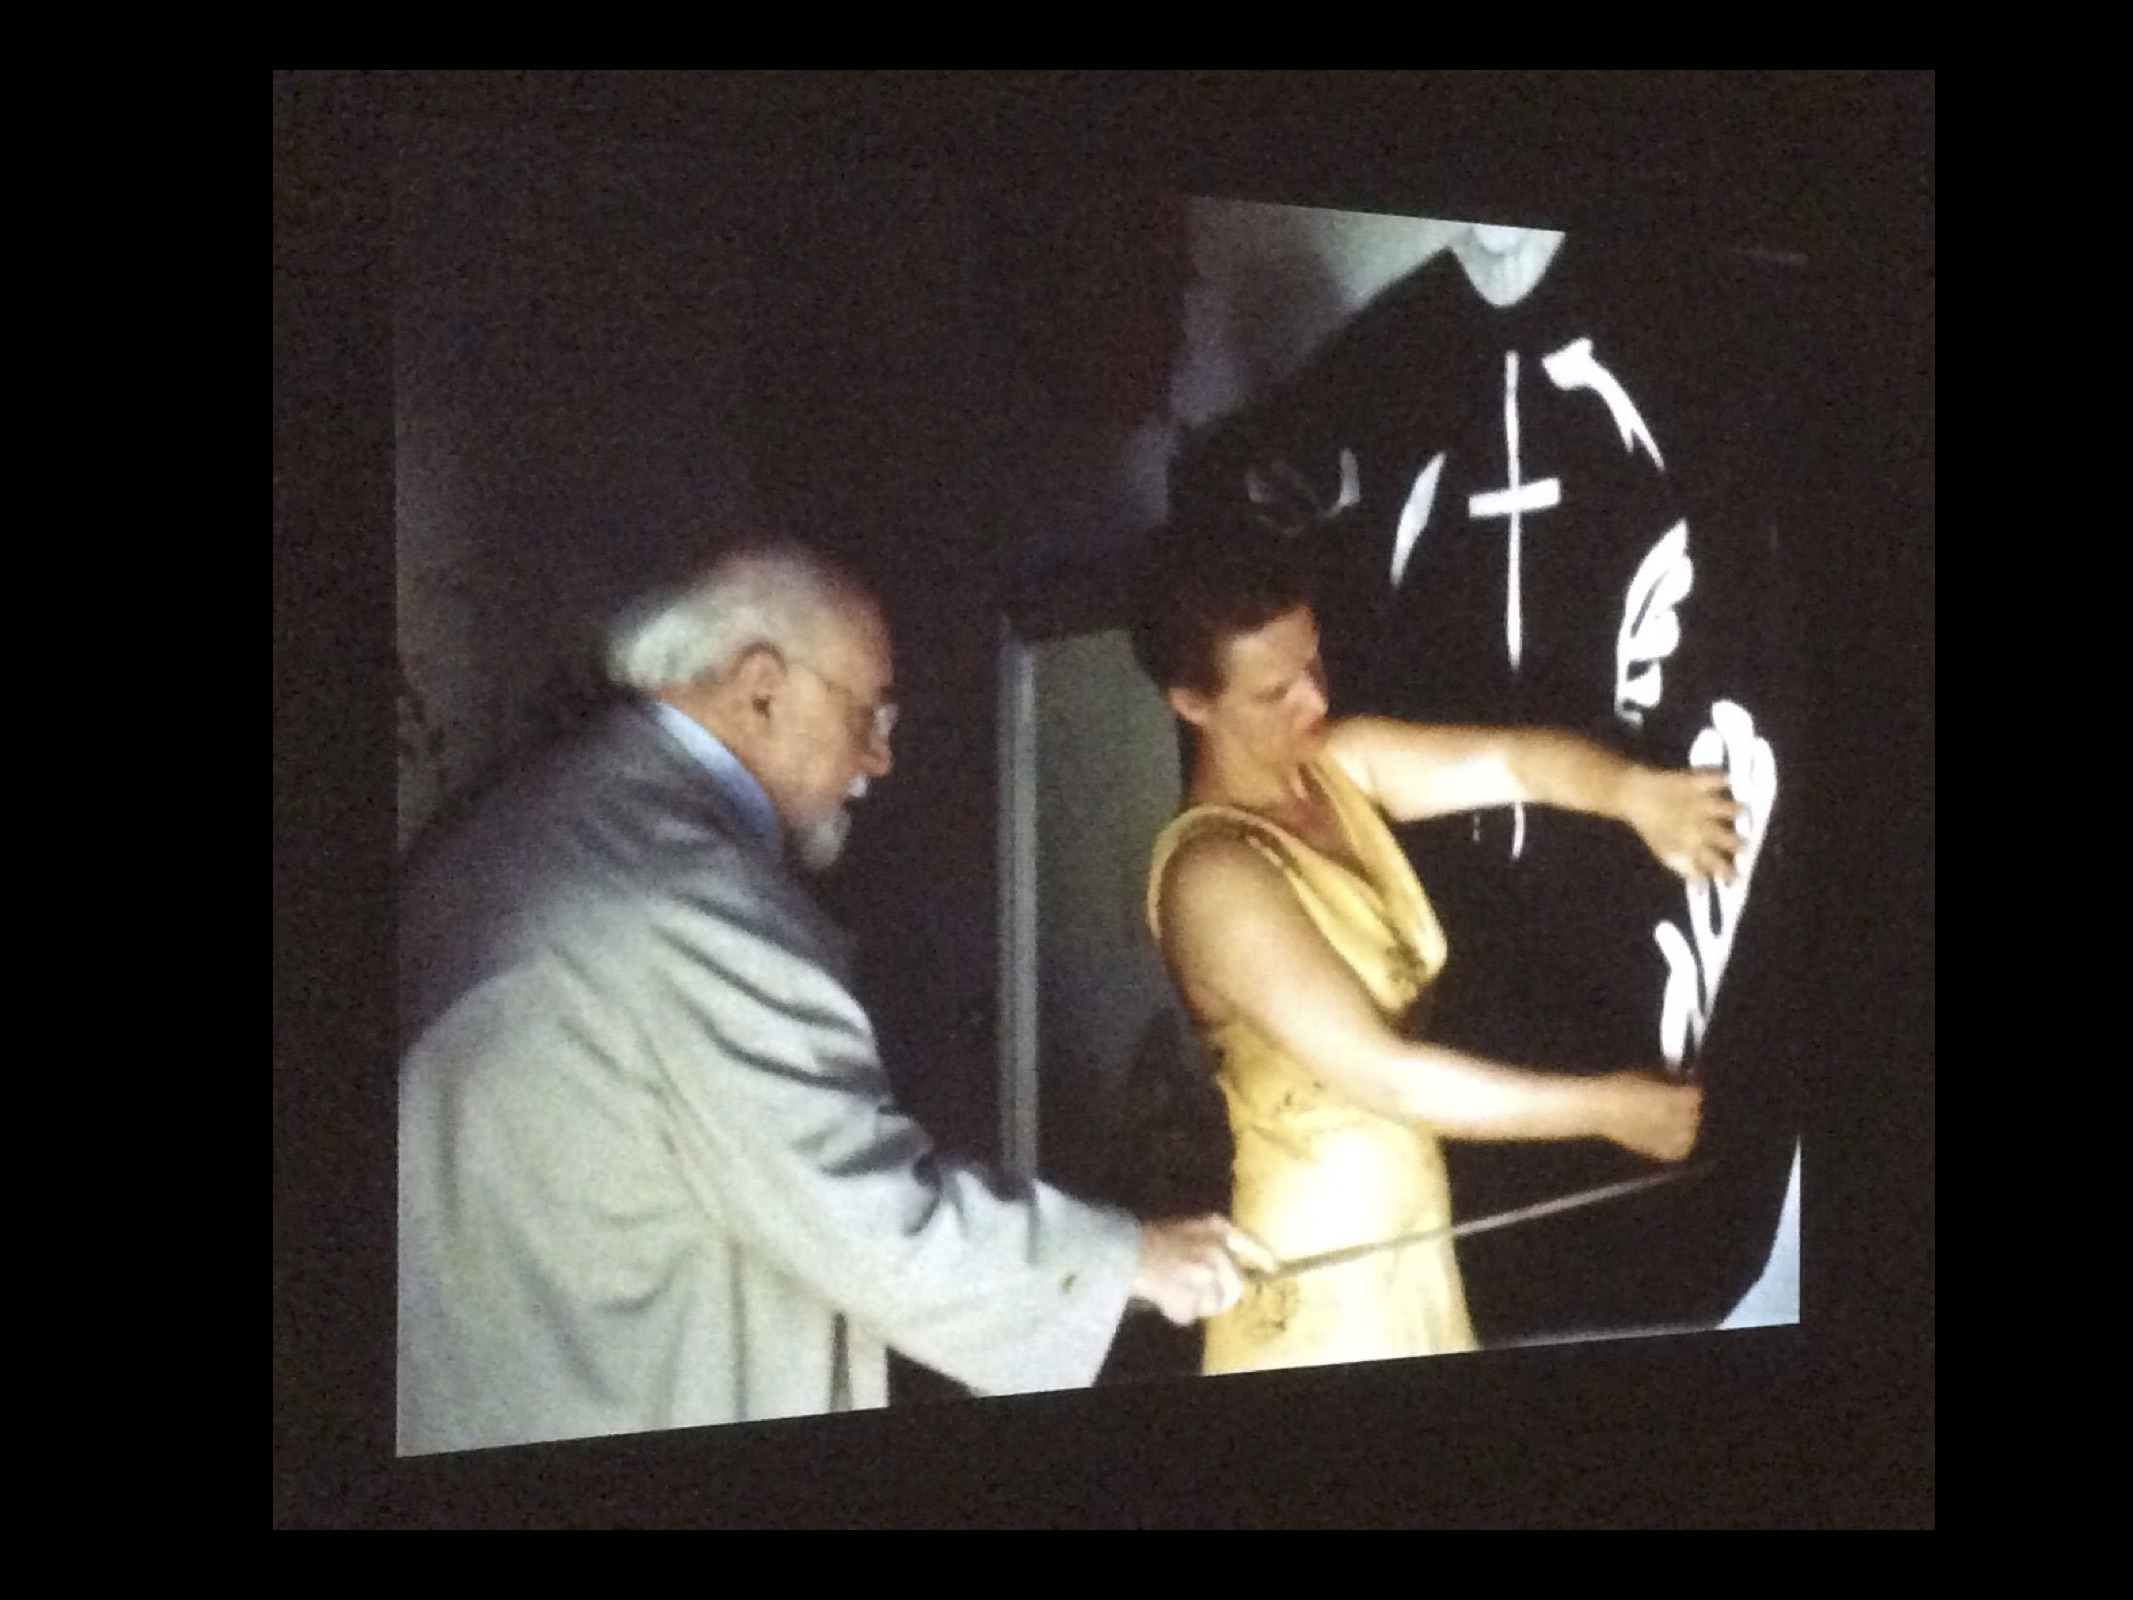 This is still from a documentary shown in a Dutch museum, showing Matisse working with one of his studio assistants. As he got older, Matisse often worked with assistants to physically help him with larger works. He told his assistants what to do. It was his work. His assistants' hands might be helping him, but he was the artist - negotiating with materials, being happy, and frustrated, and annoyed, and excited.